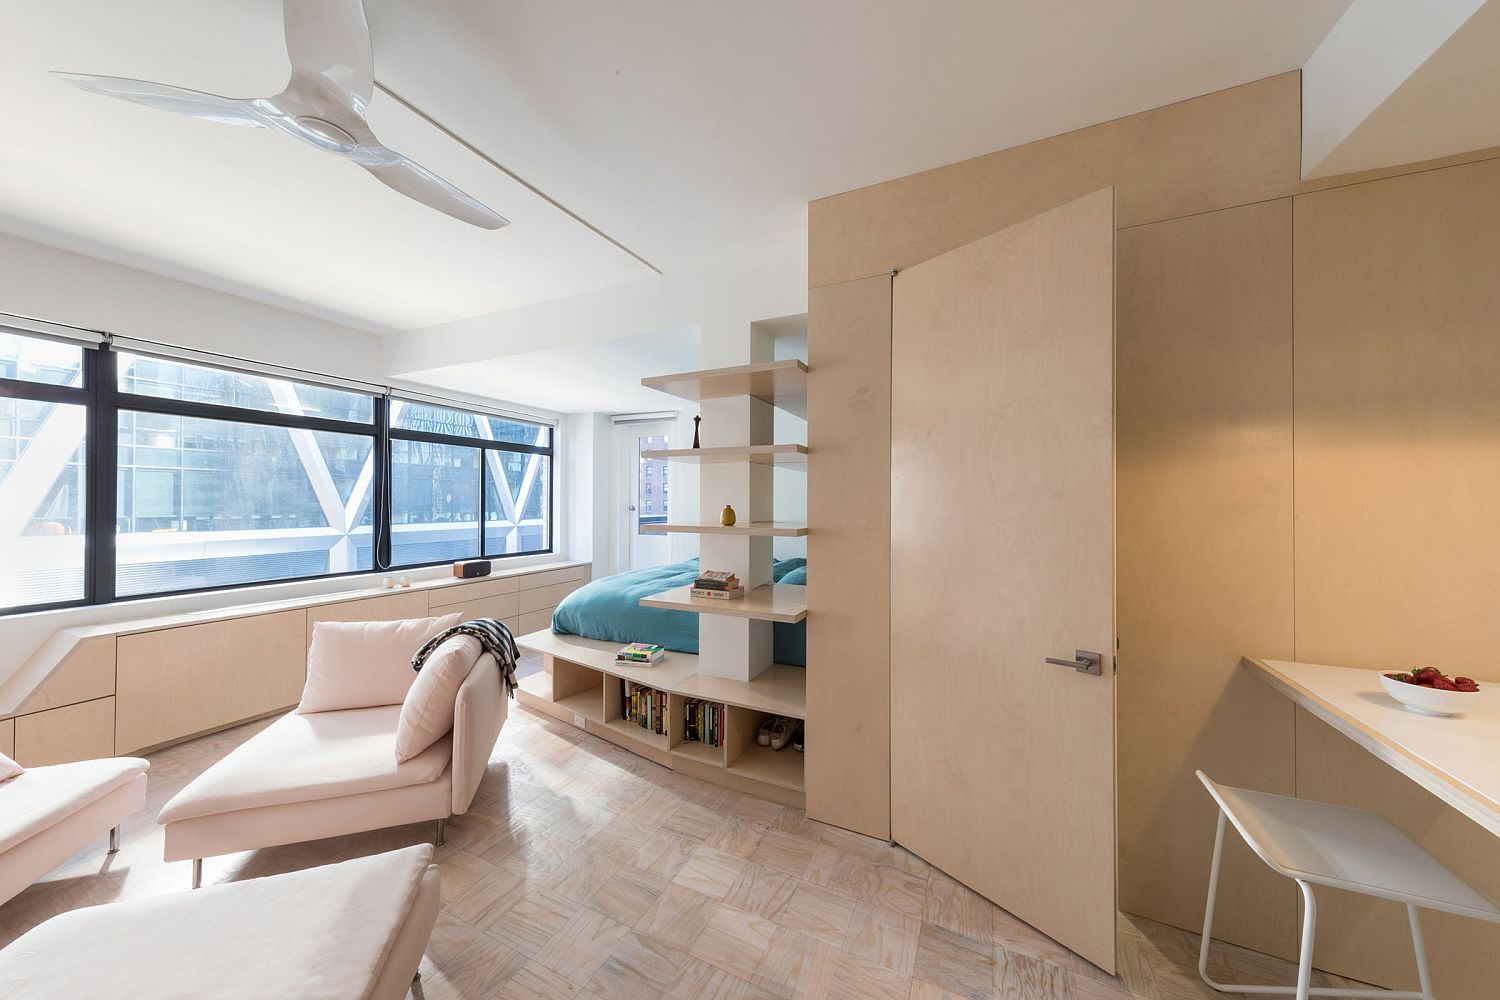 In-built storage features and wooden decor give the apartment a space-savvy style